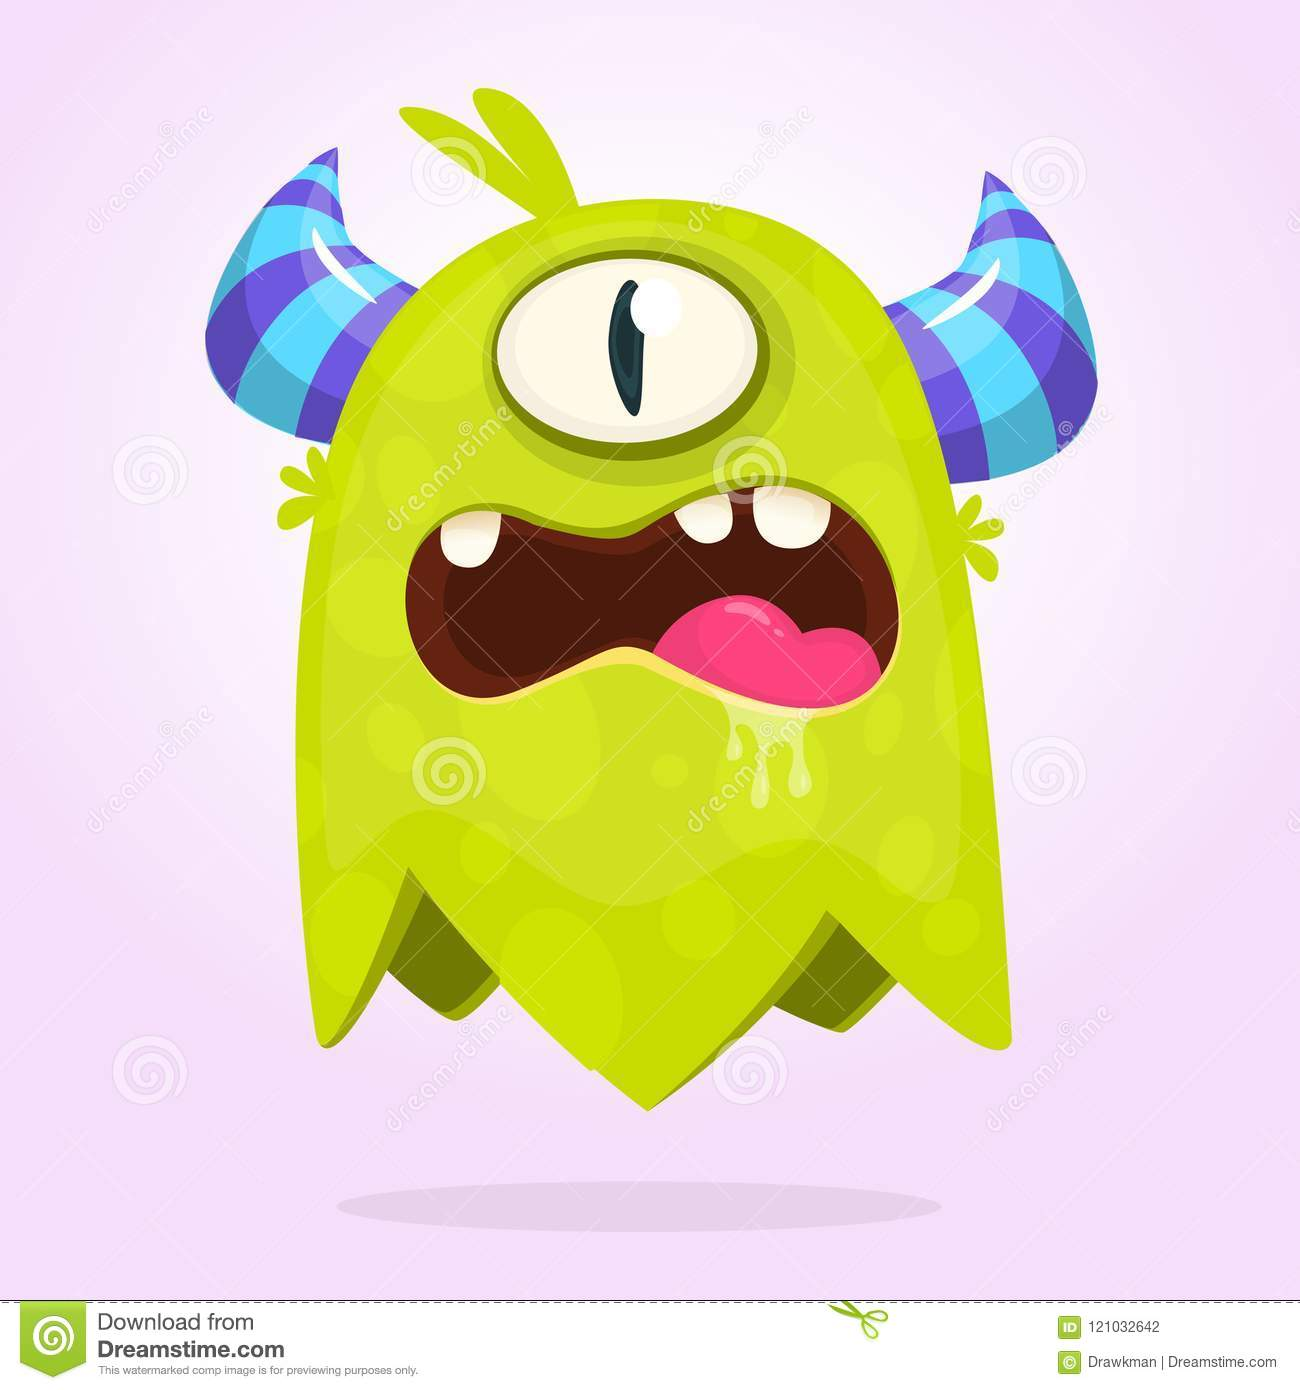 hight resolution of funny cartoon monster with horns with one eye angry monster emotion with big mouth halloween vector illustration